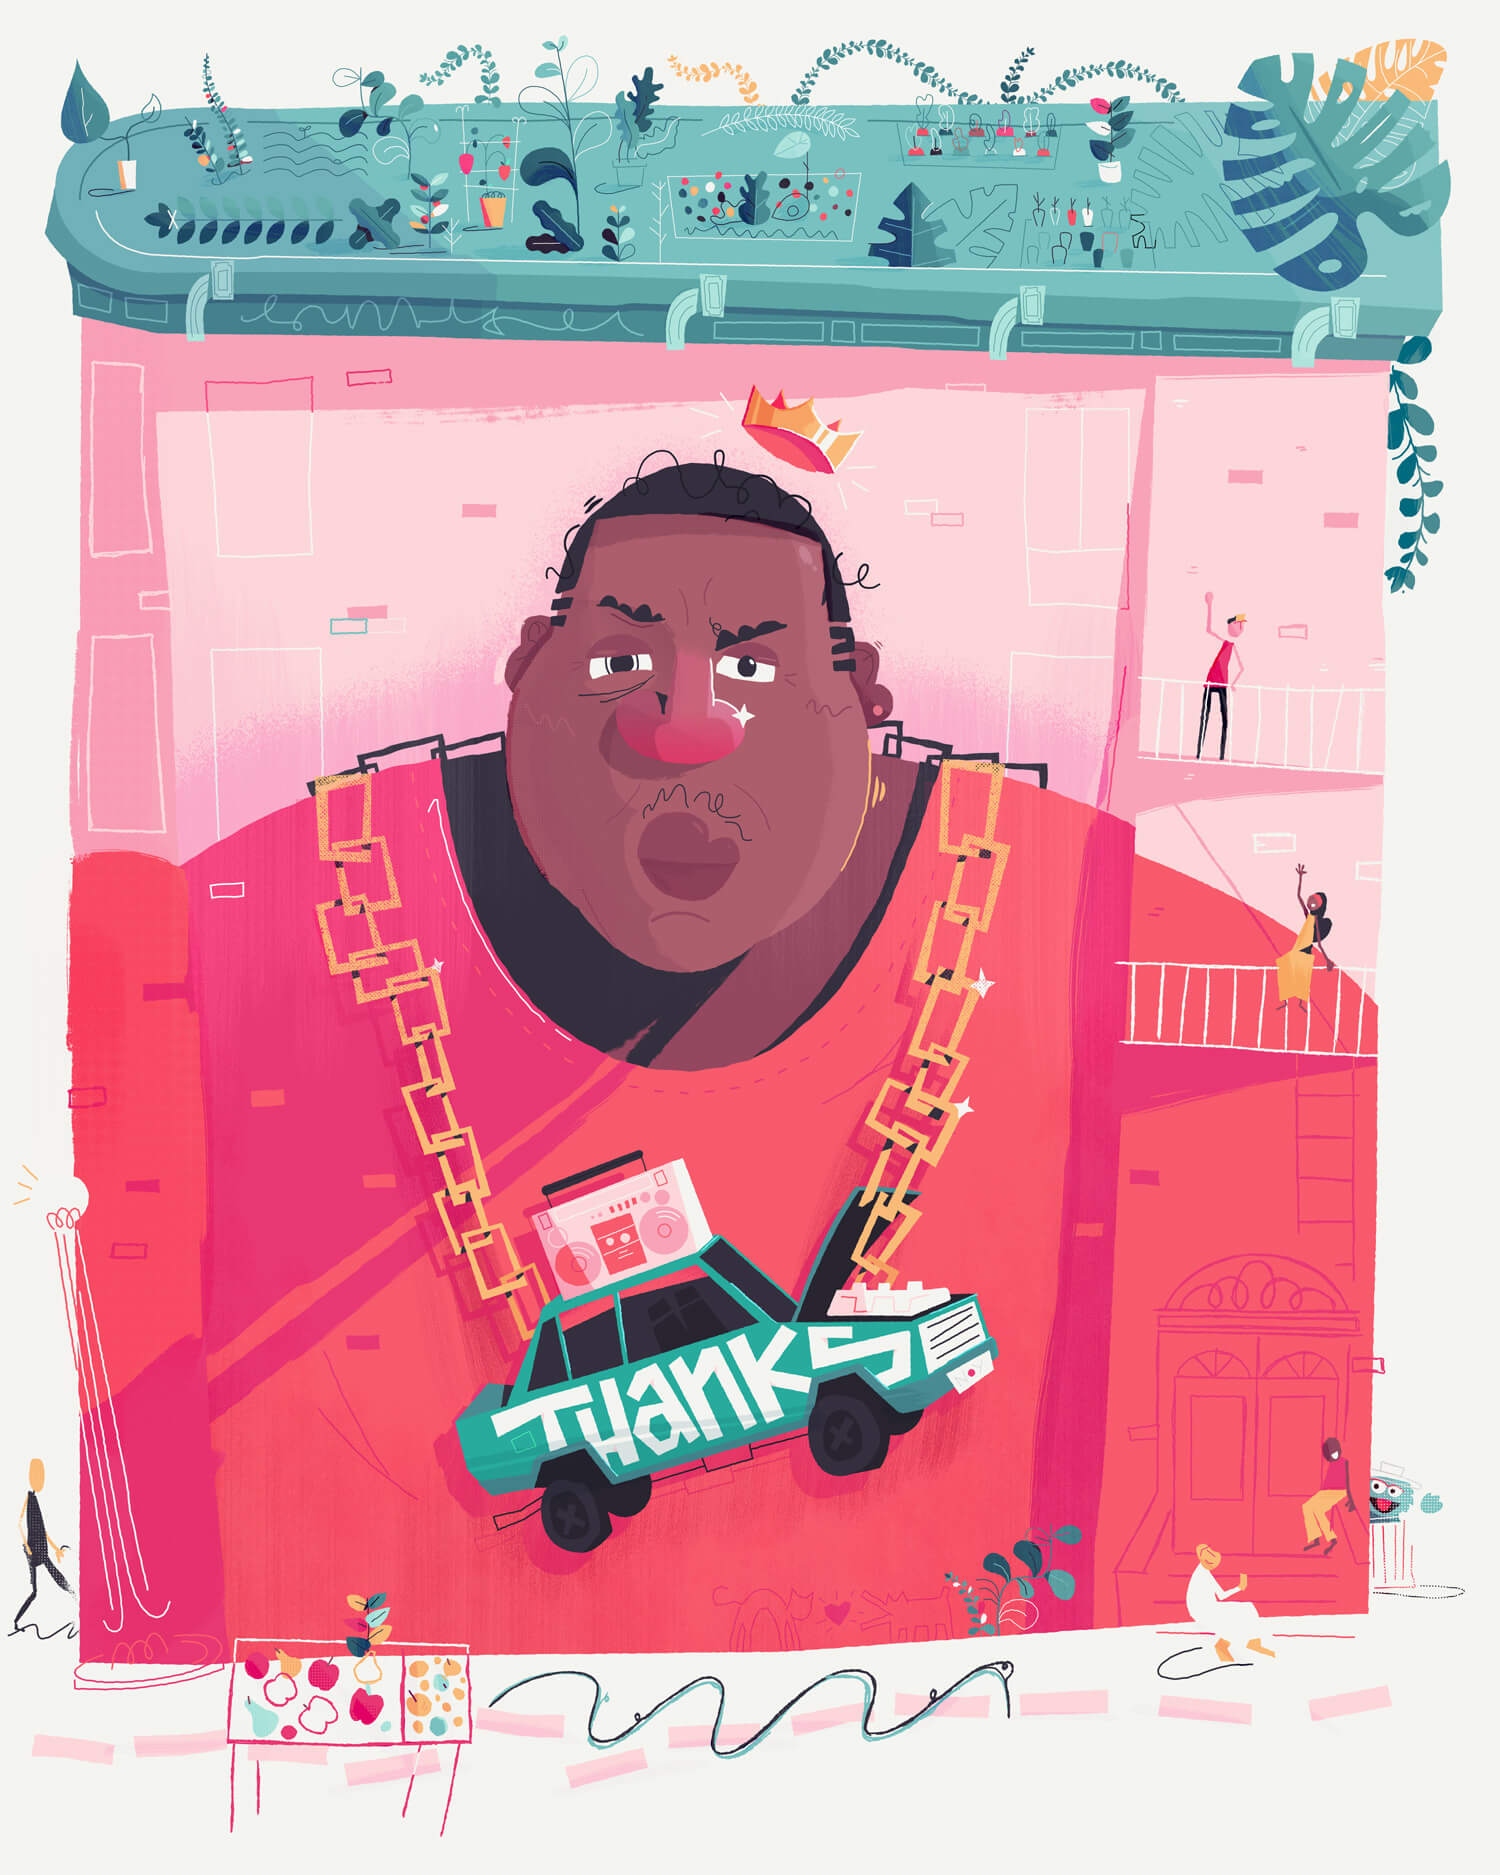 biggie-thanks-process-05.jpg